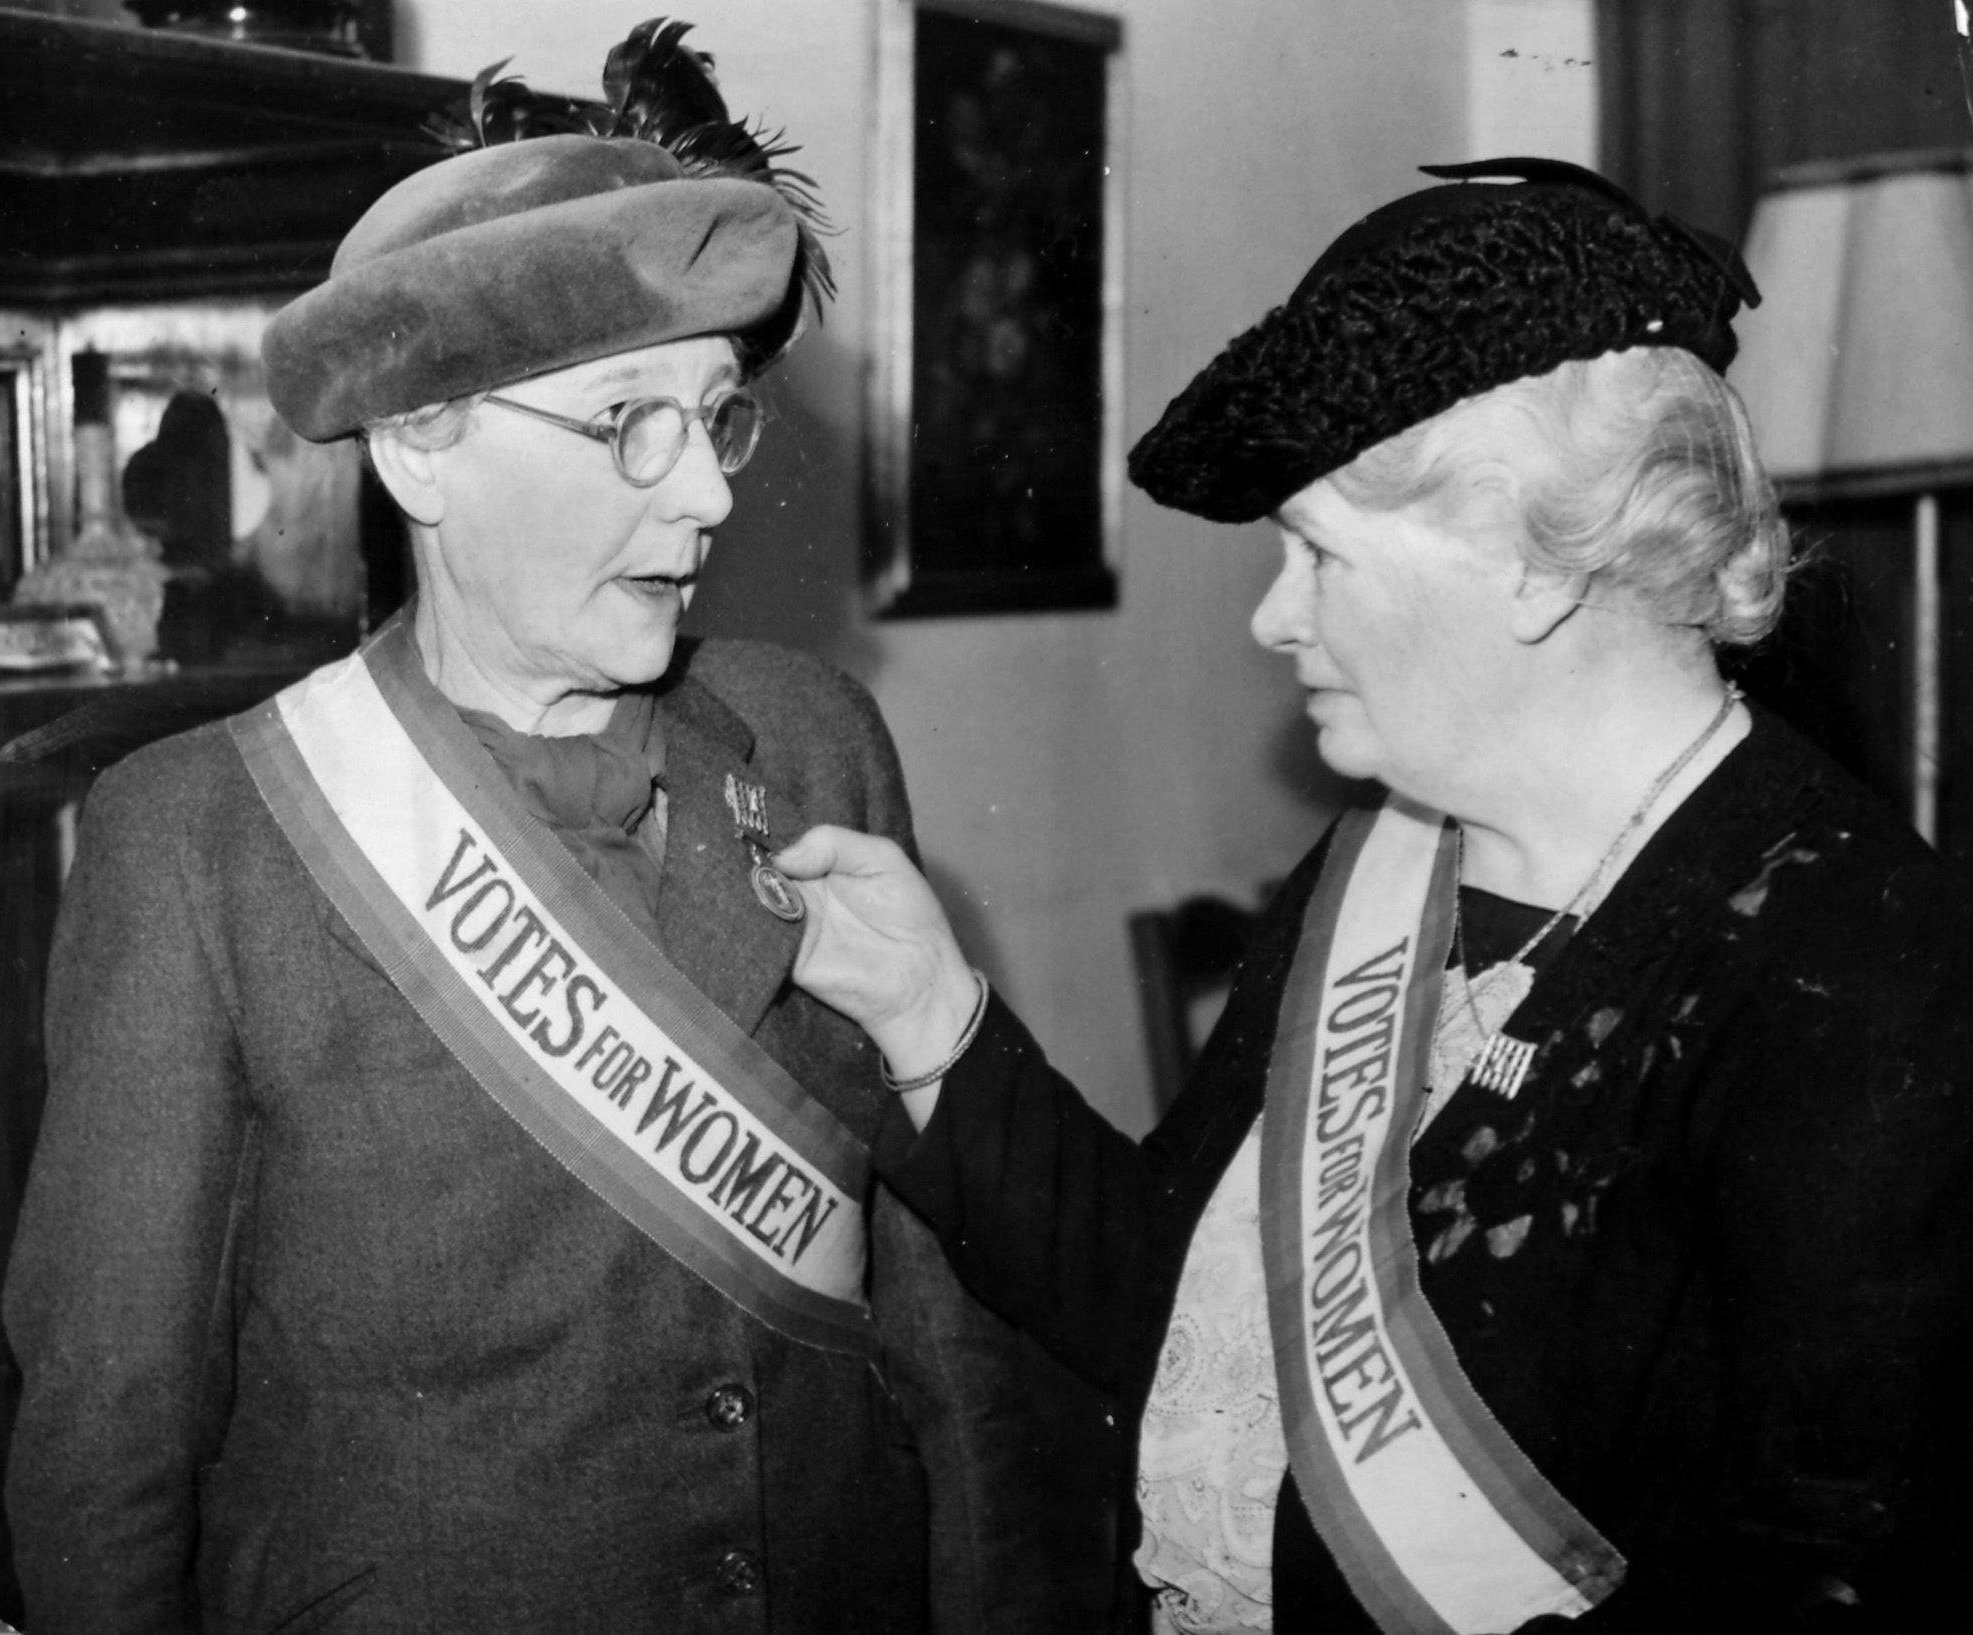 Janet Barrowman and Helen Crawfurd attended a Women for Westminster rally in Sauchiehall Street in 1949 â in Miss..Barrowmanâs case two months with hard labour â for campaigning for womenâs suffrage...Miss Barrowman was a leading member of the nationa